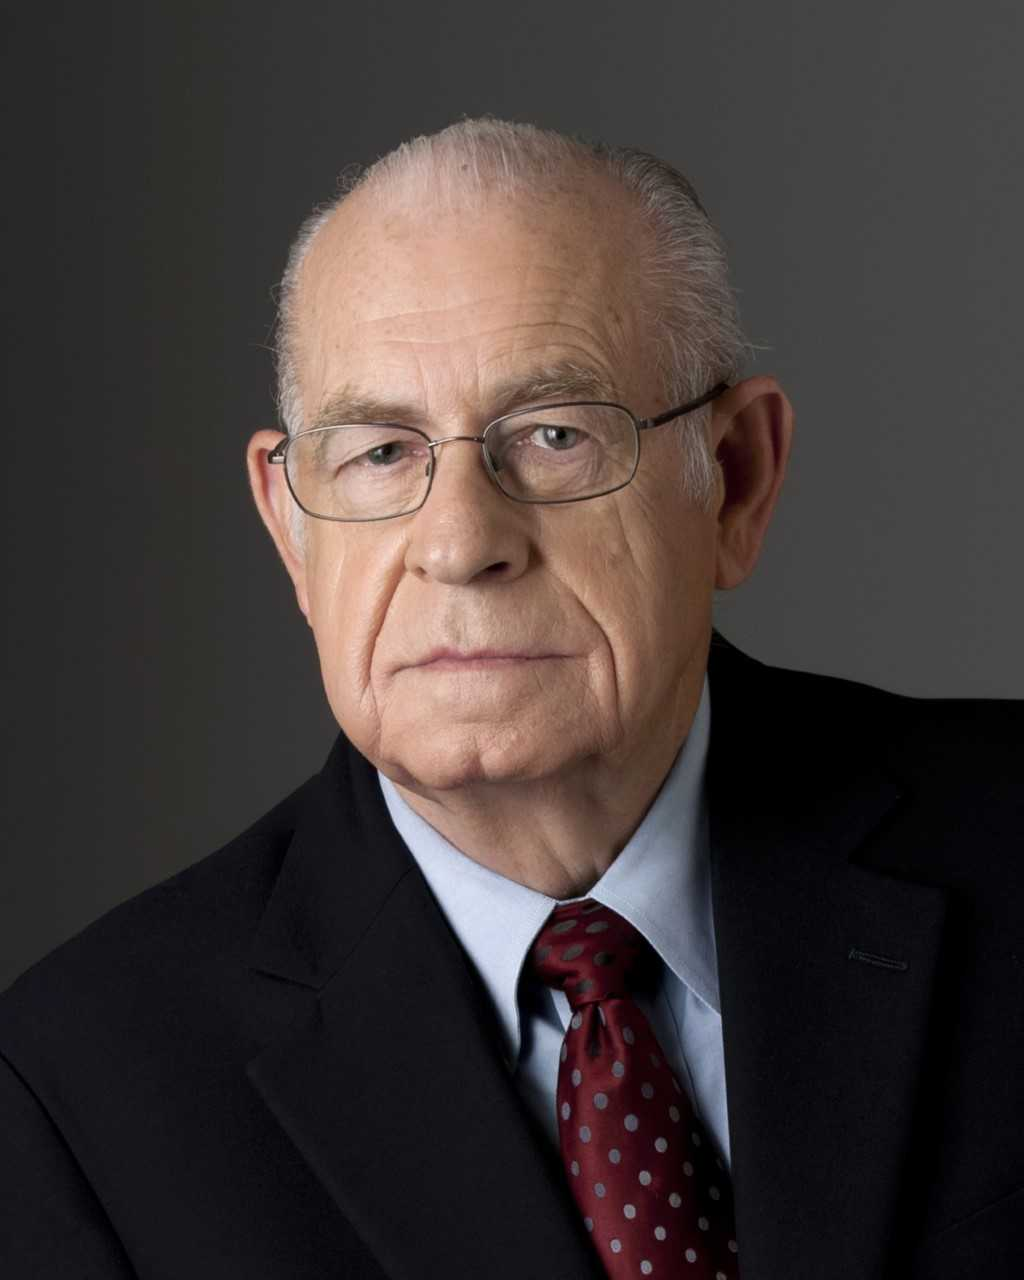 Carl Kasell unsized image